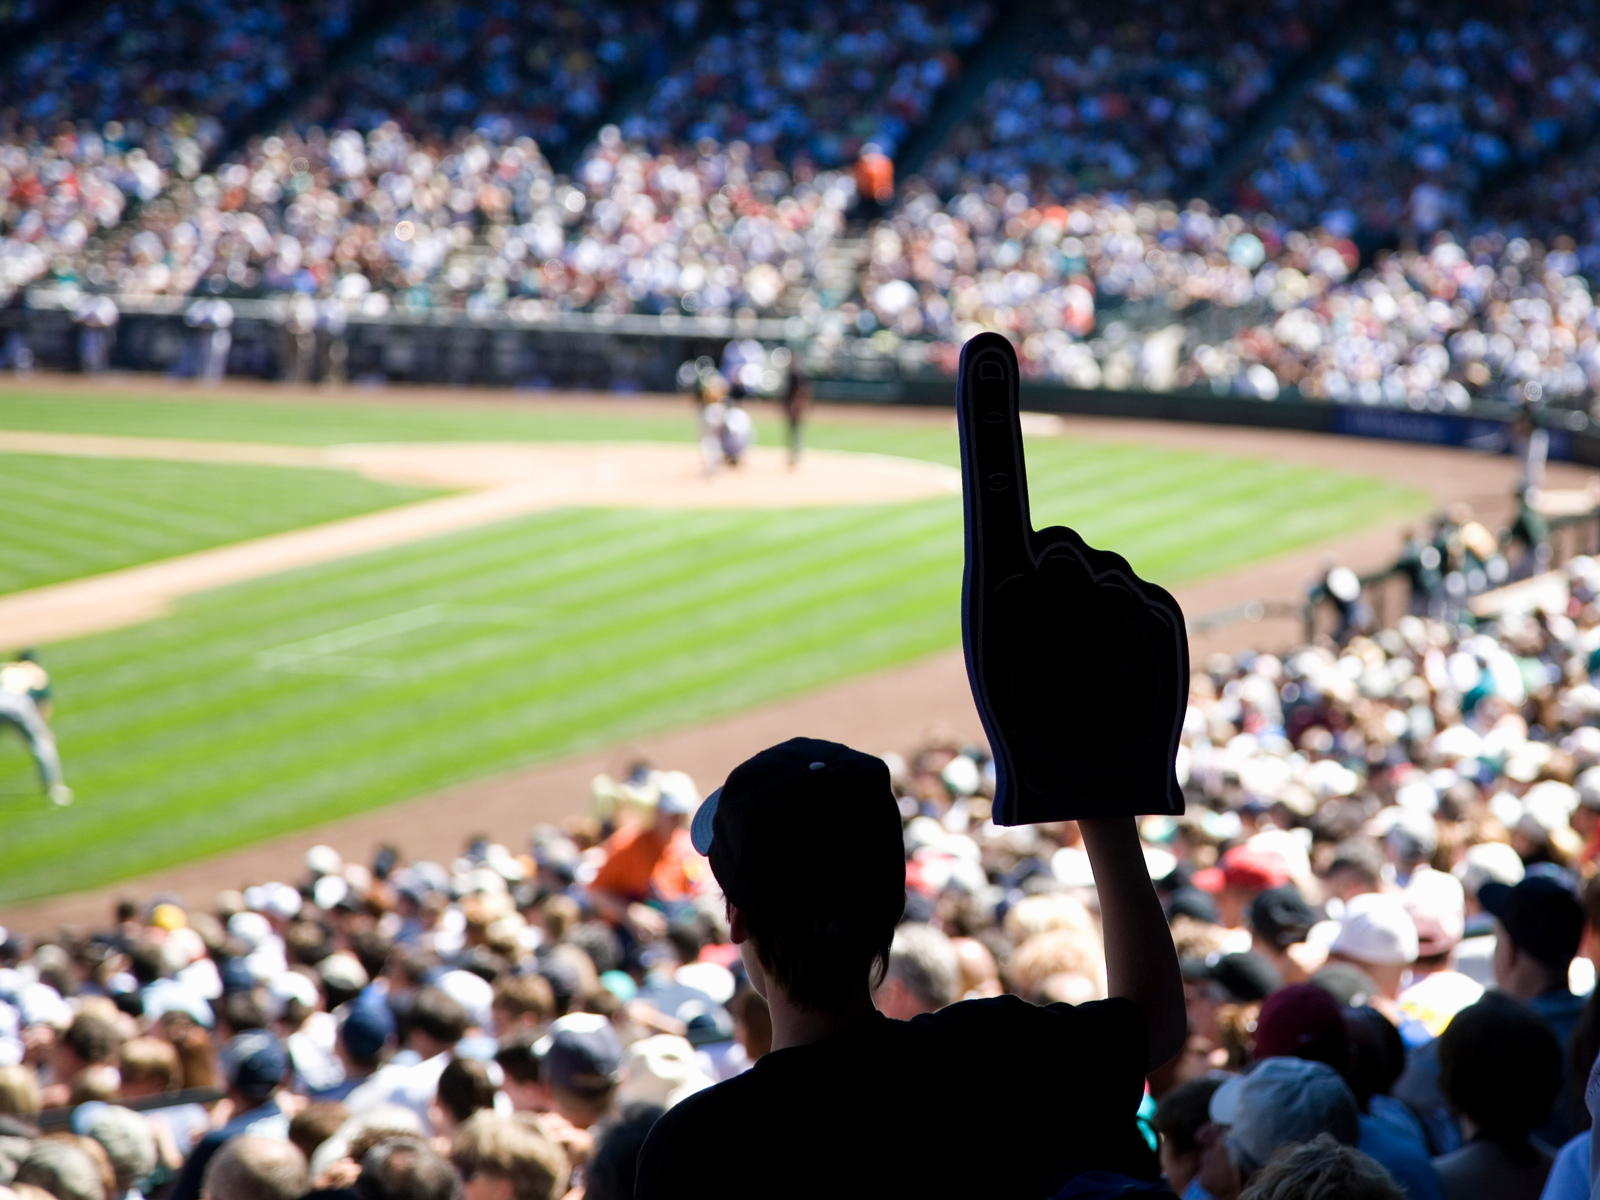 peta-vegan-friendly-ballpark-FT-BLOG0519.jpg